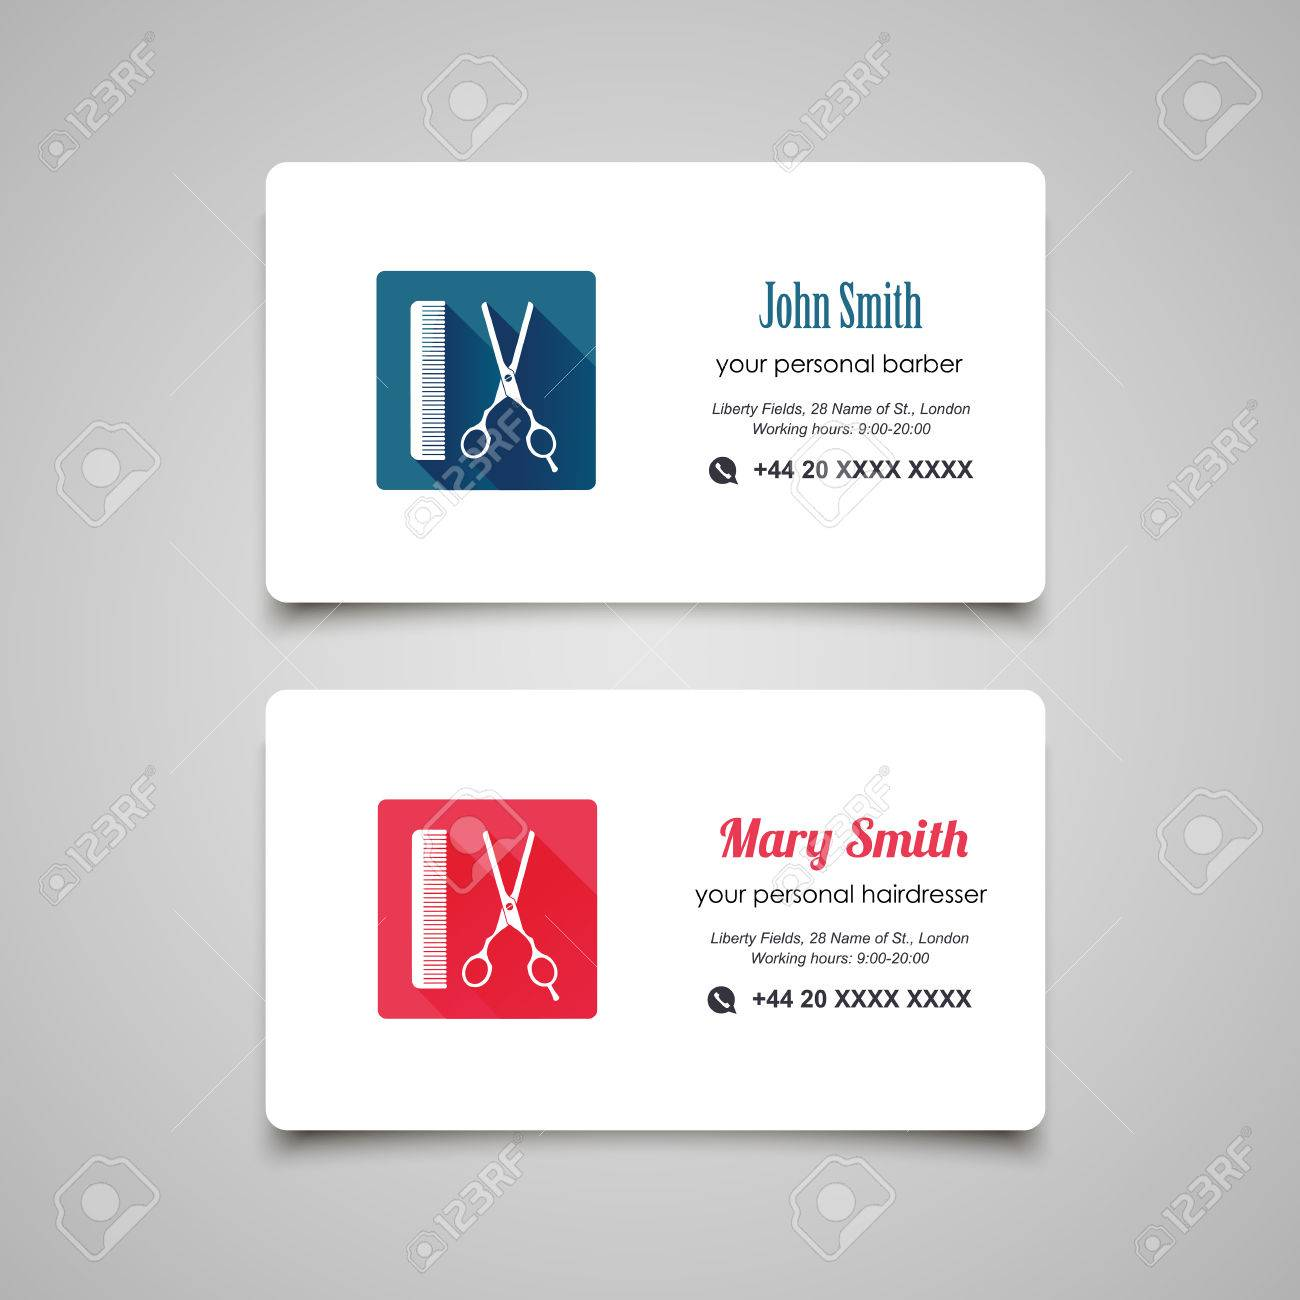 Cna business cards image collections free business cards cna business cards images free business cards paralegal business cards sample gallery free business cards cna magicingreecefo Gallery